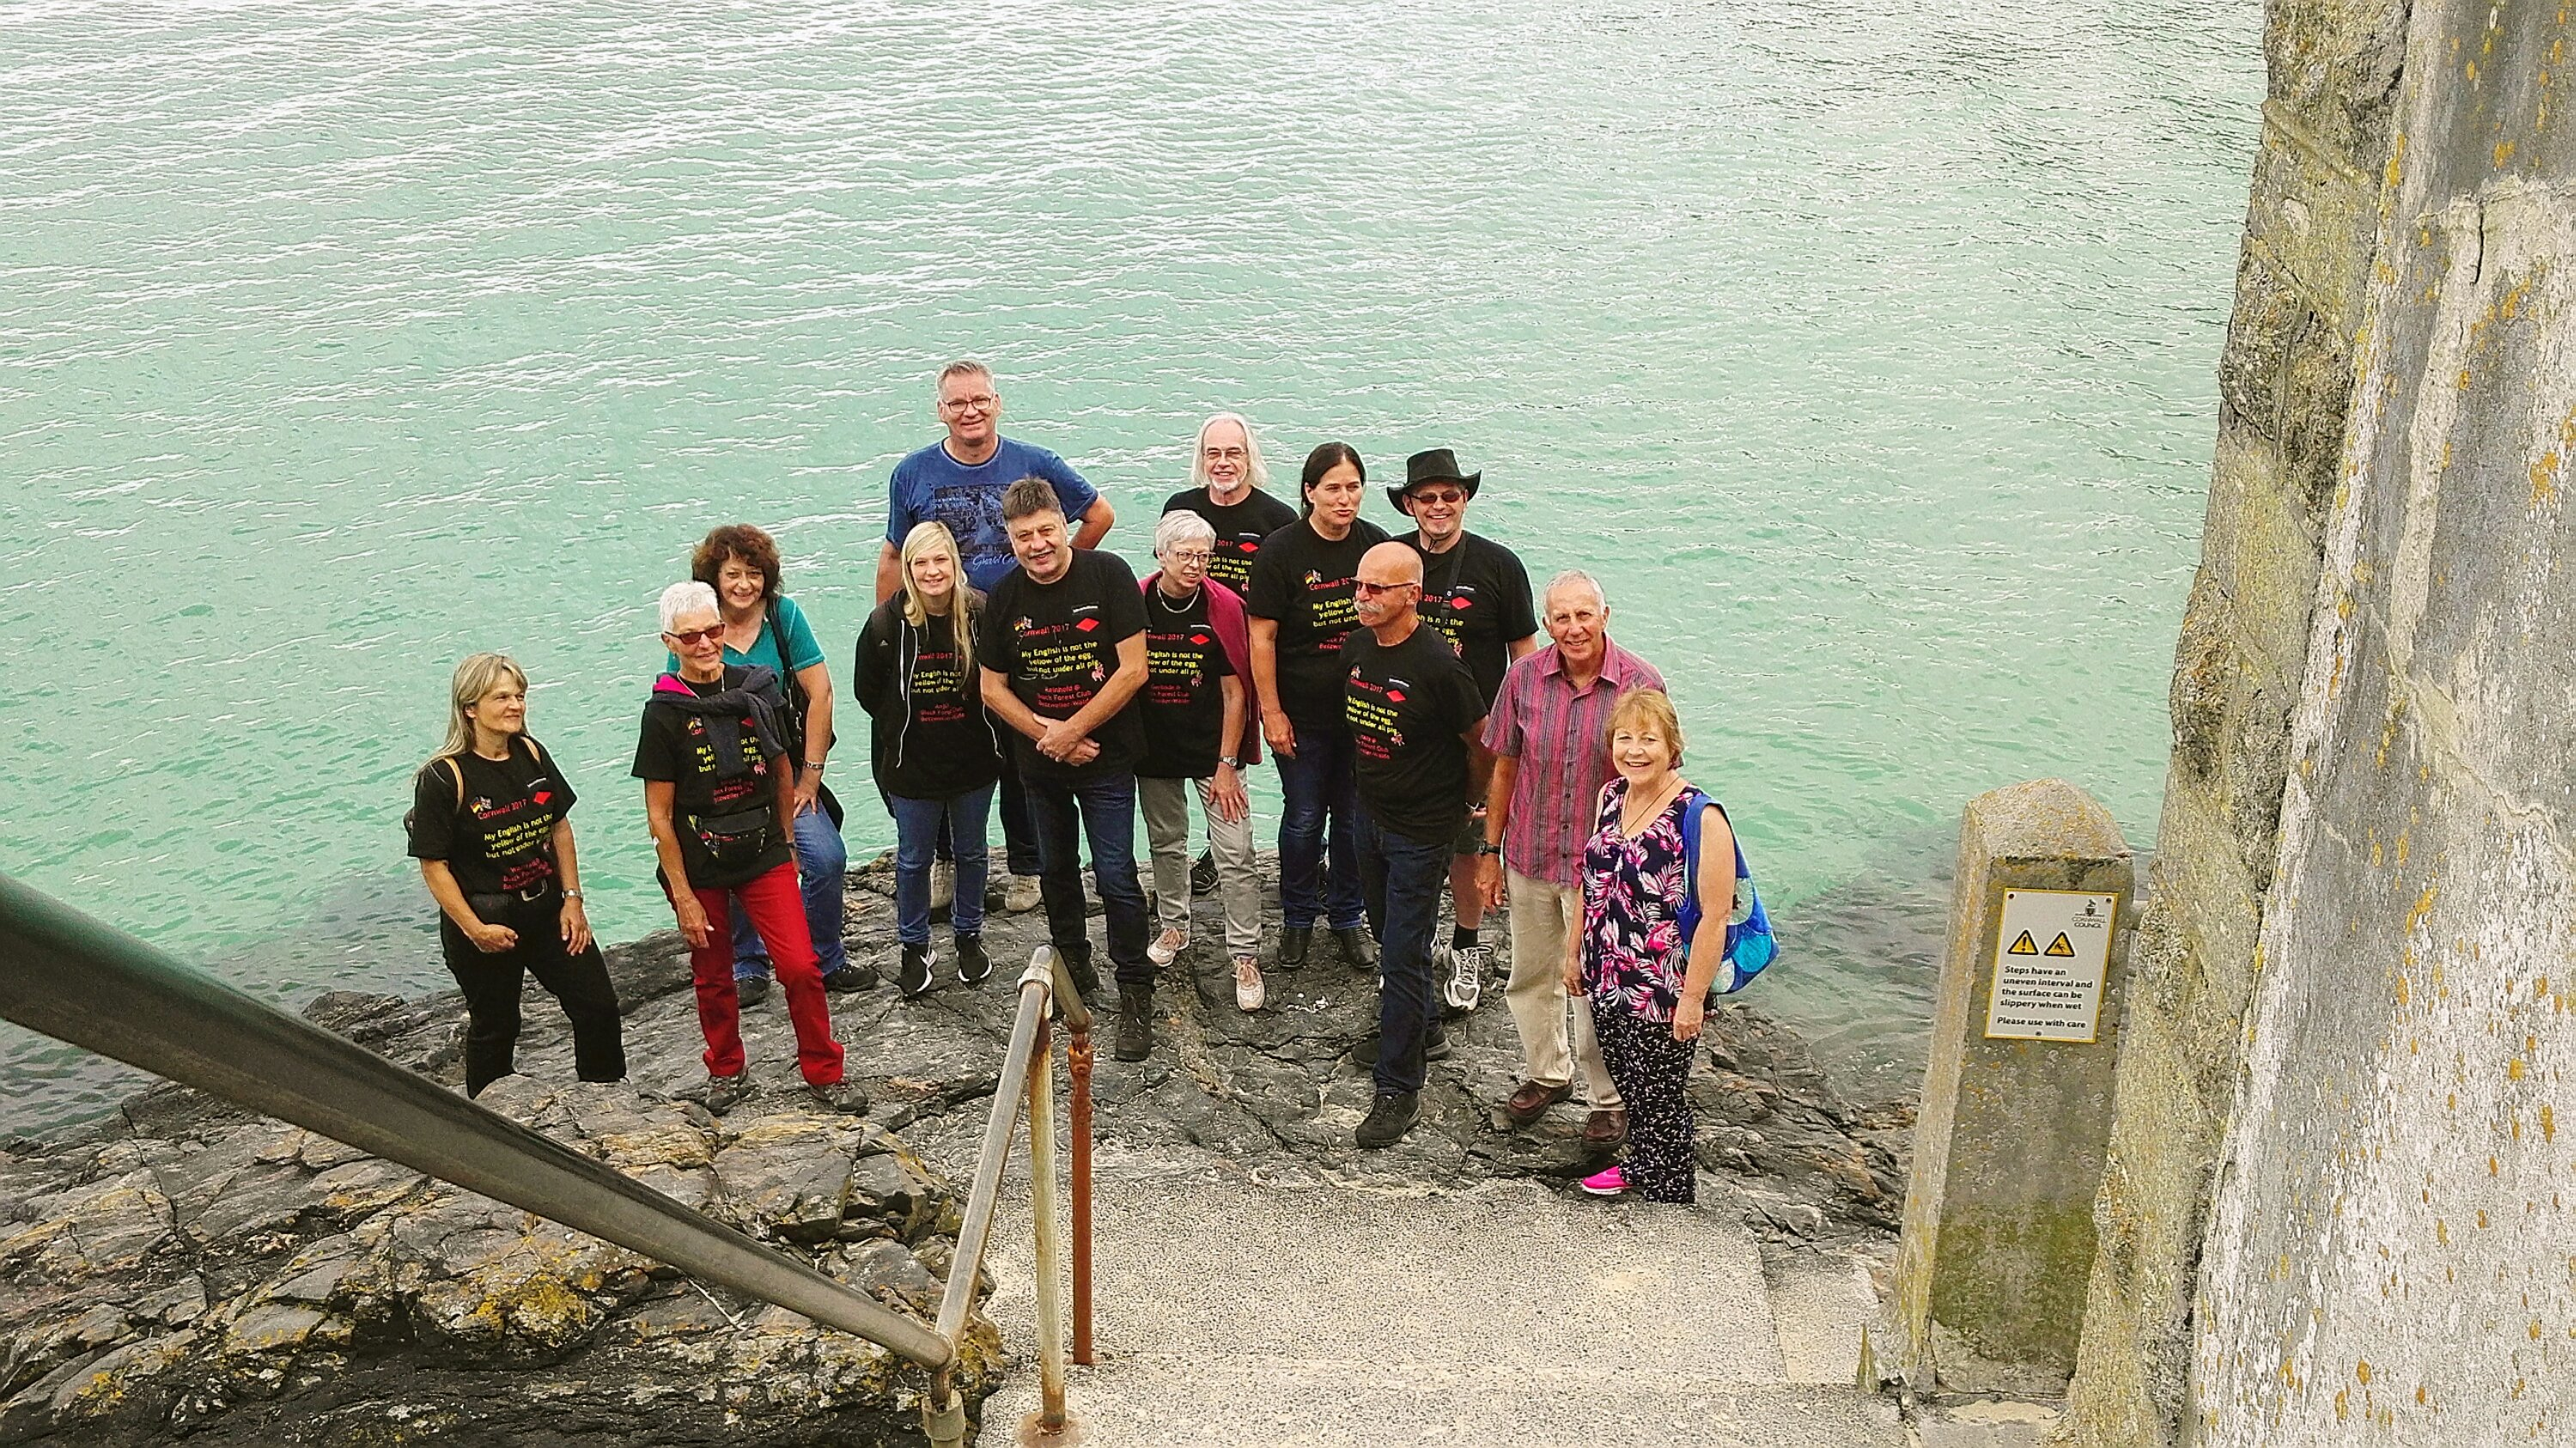 1. Gruppenbild in St. Ives